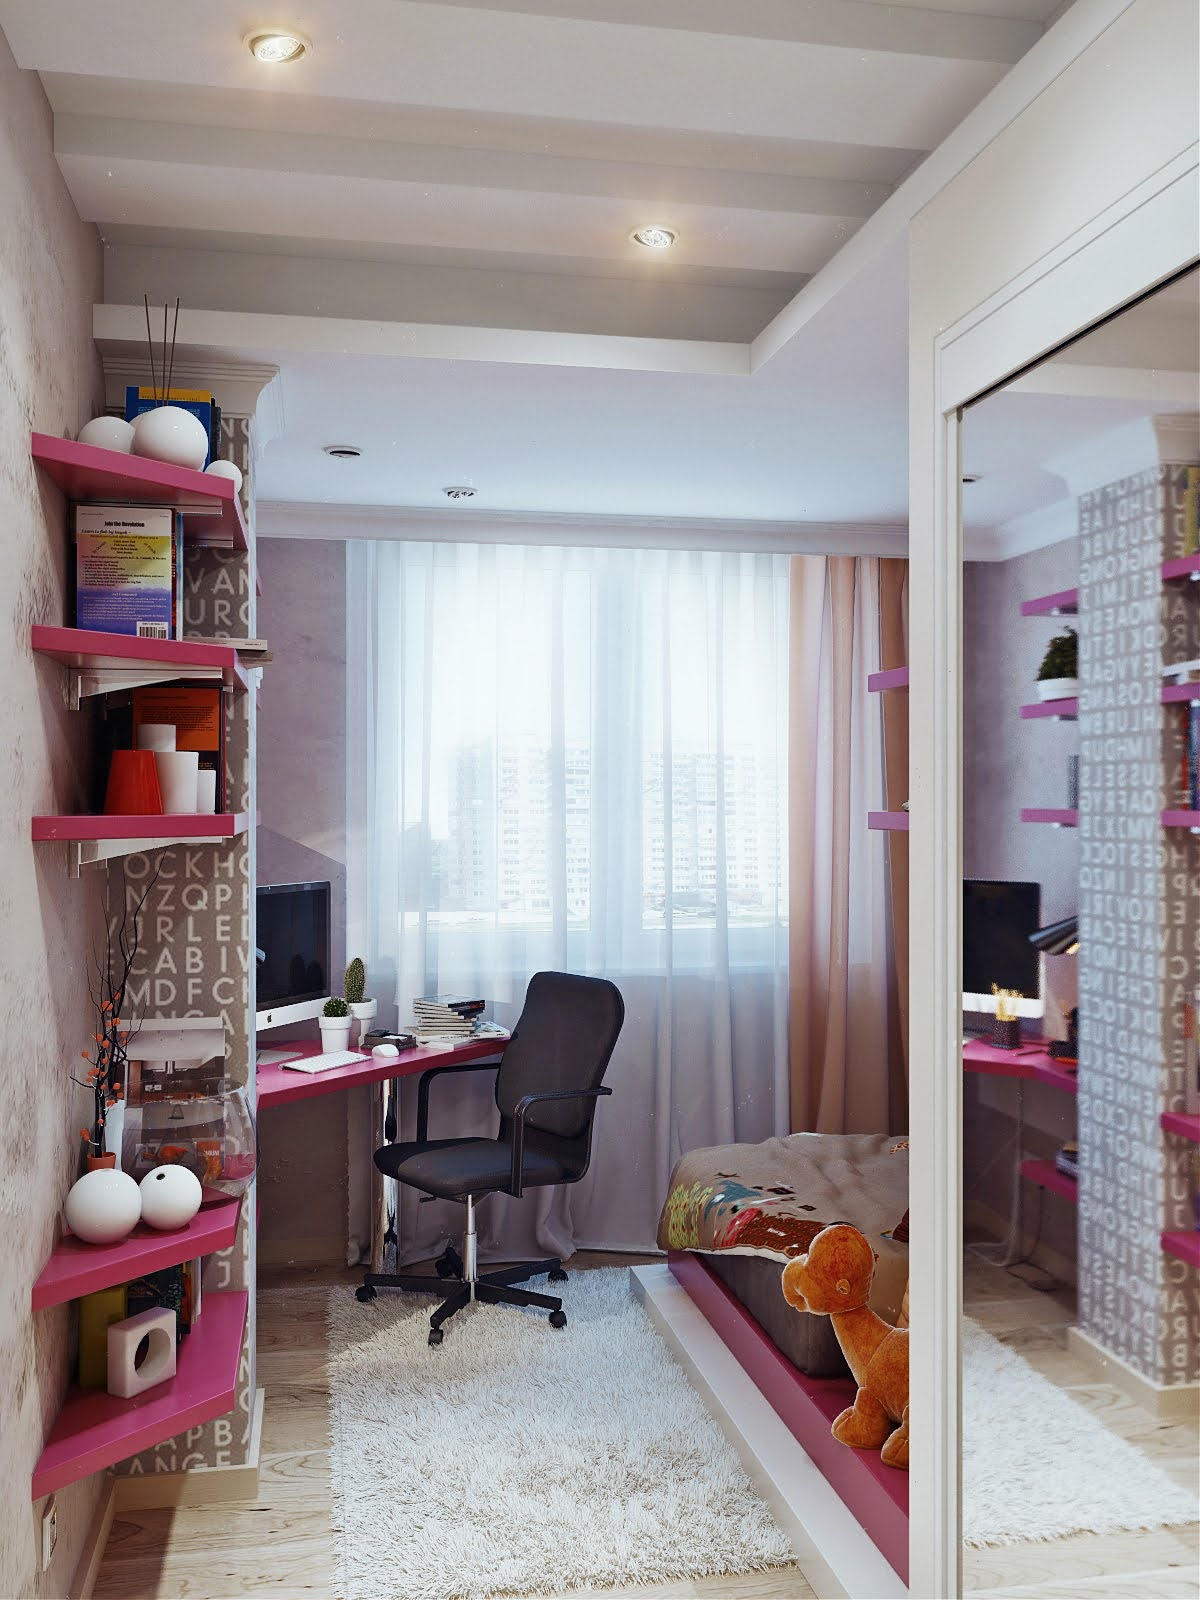 Merveilleux Fill Small Area Using Cozy Teen Girl Room Ideas With Corner Computer Desk  And Pink Wall